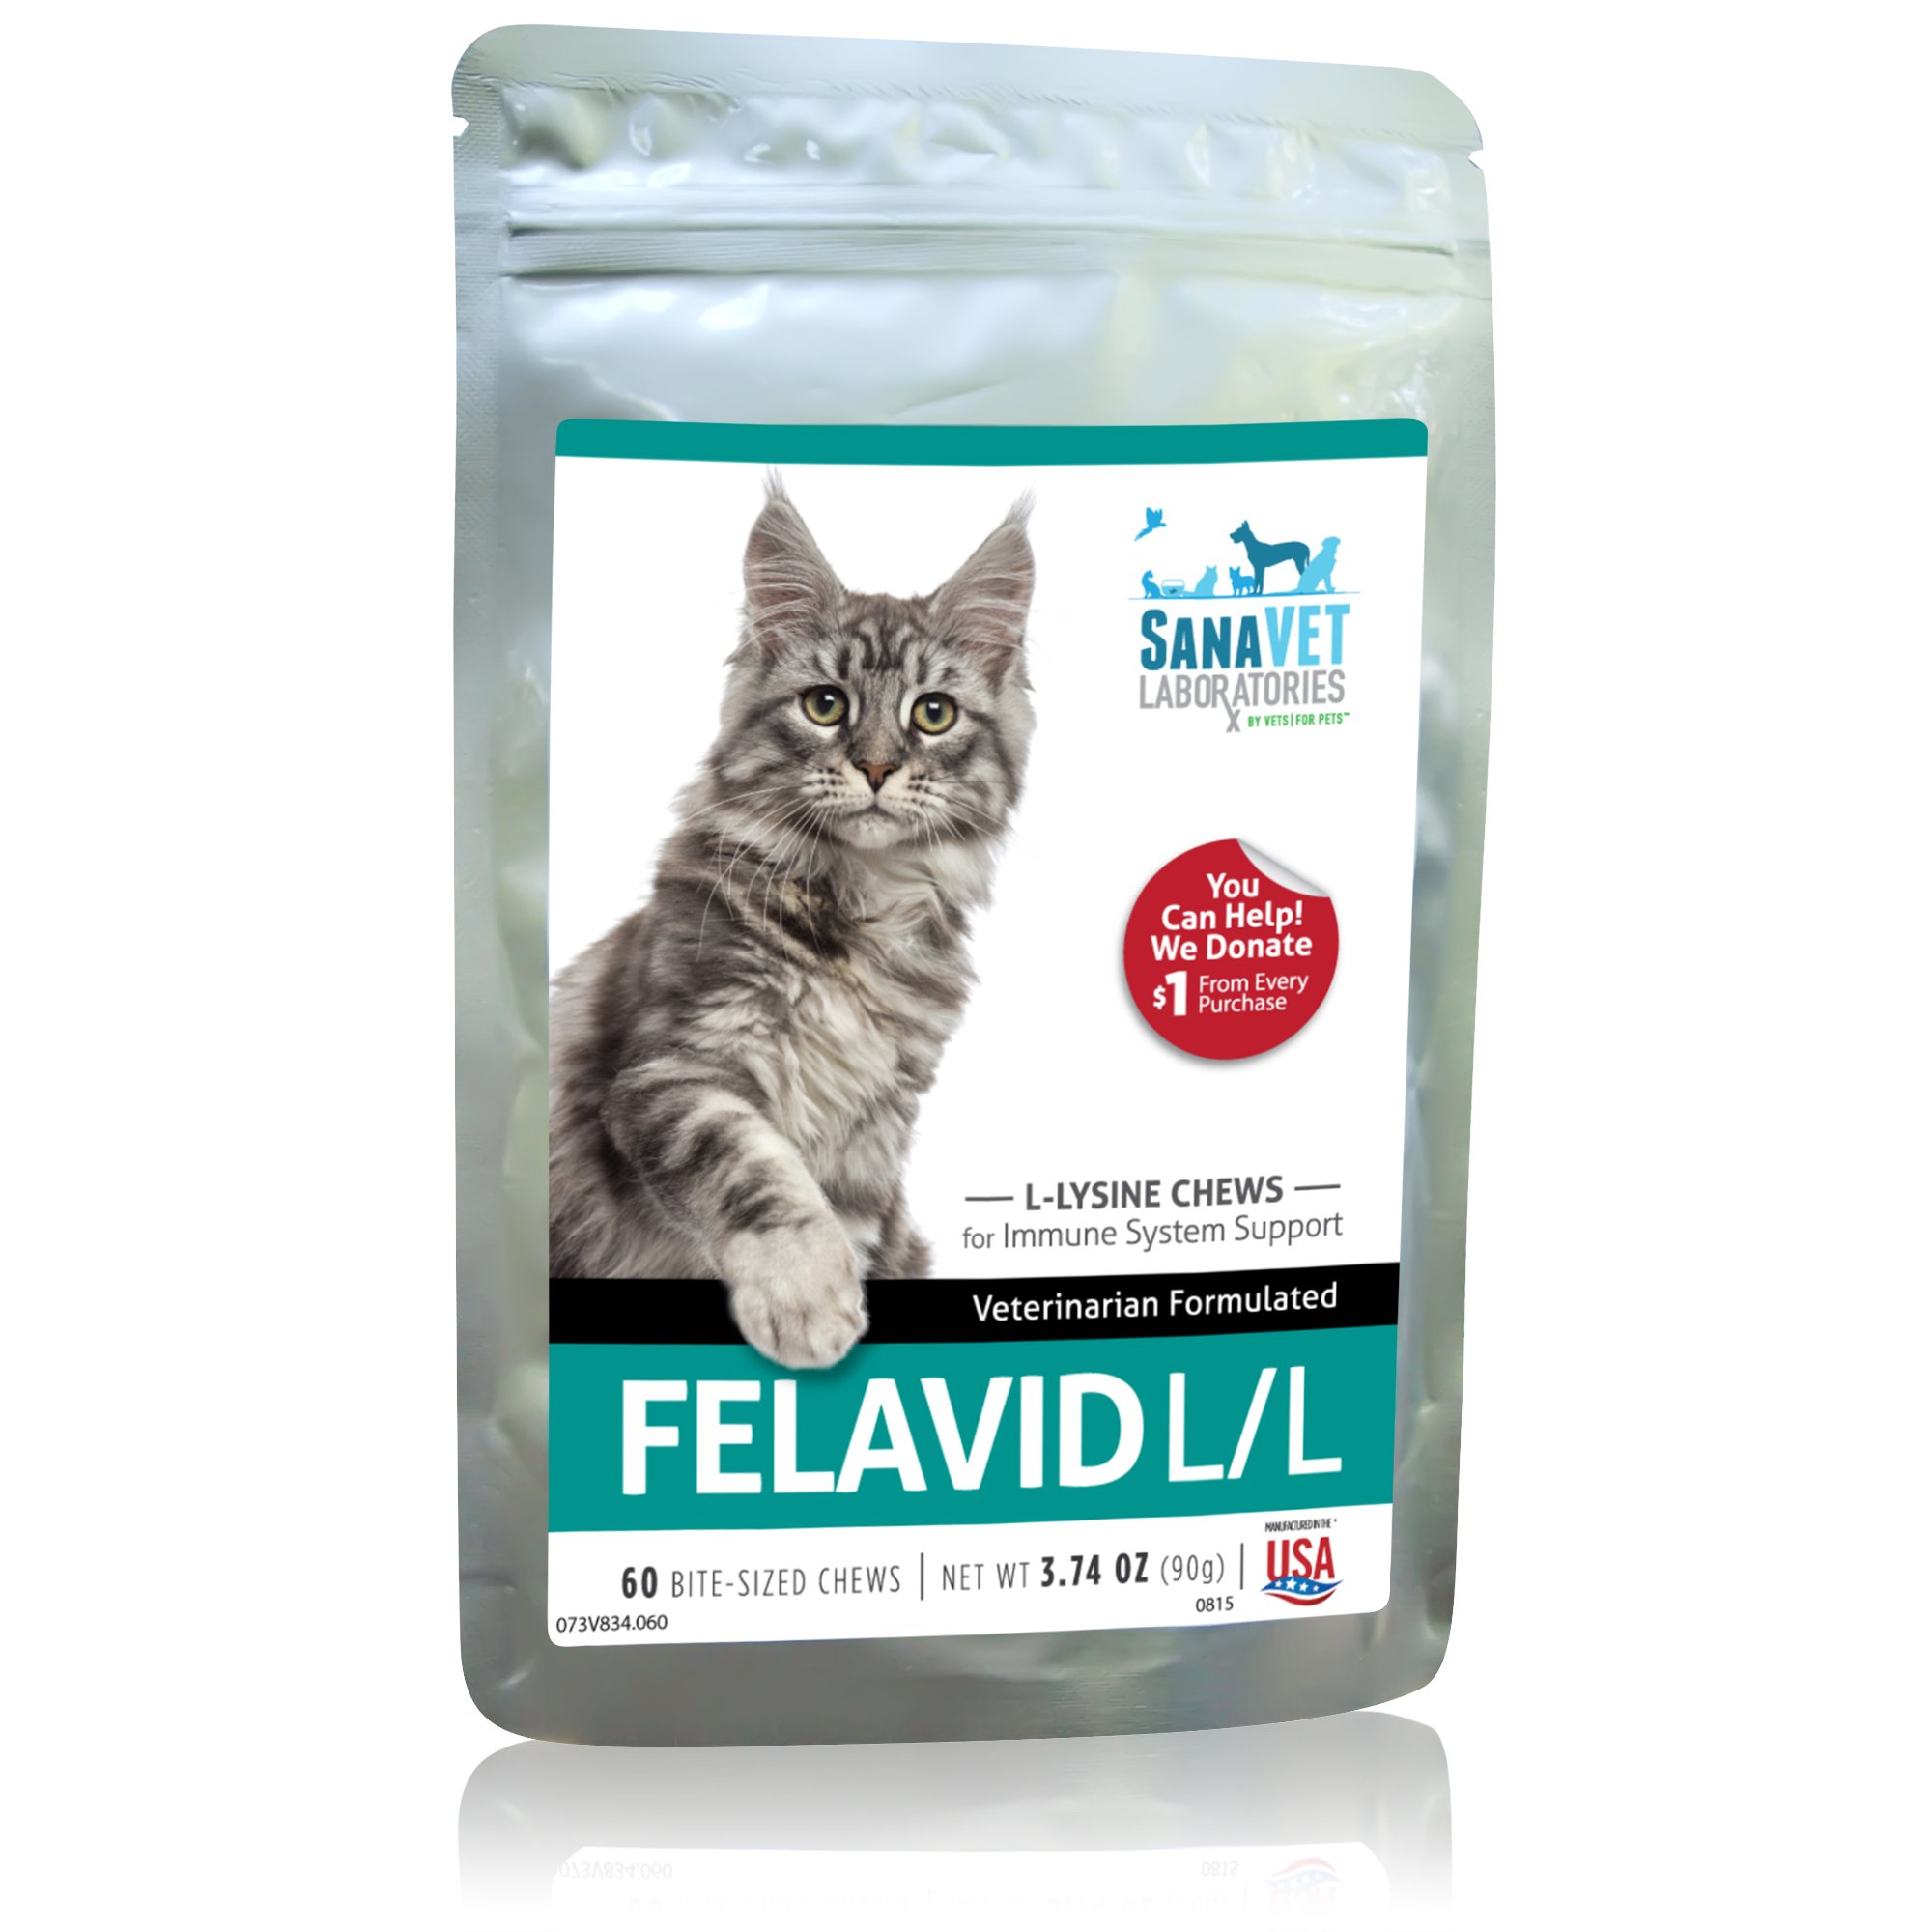 L Lysine for Cats - Tasty Chews for Immune System Support 3.74oz